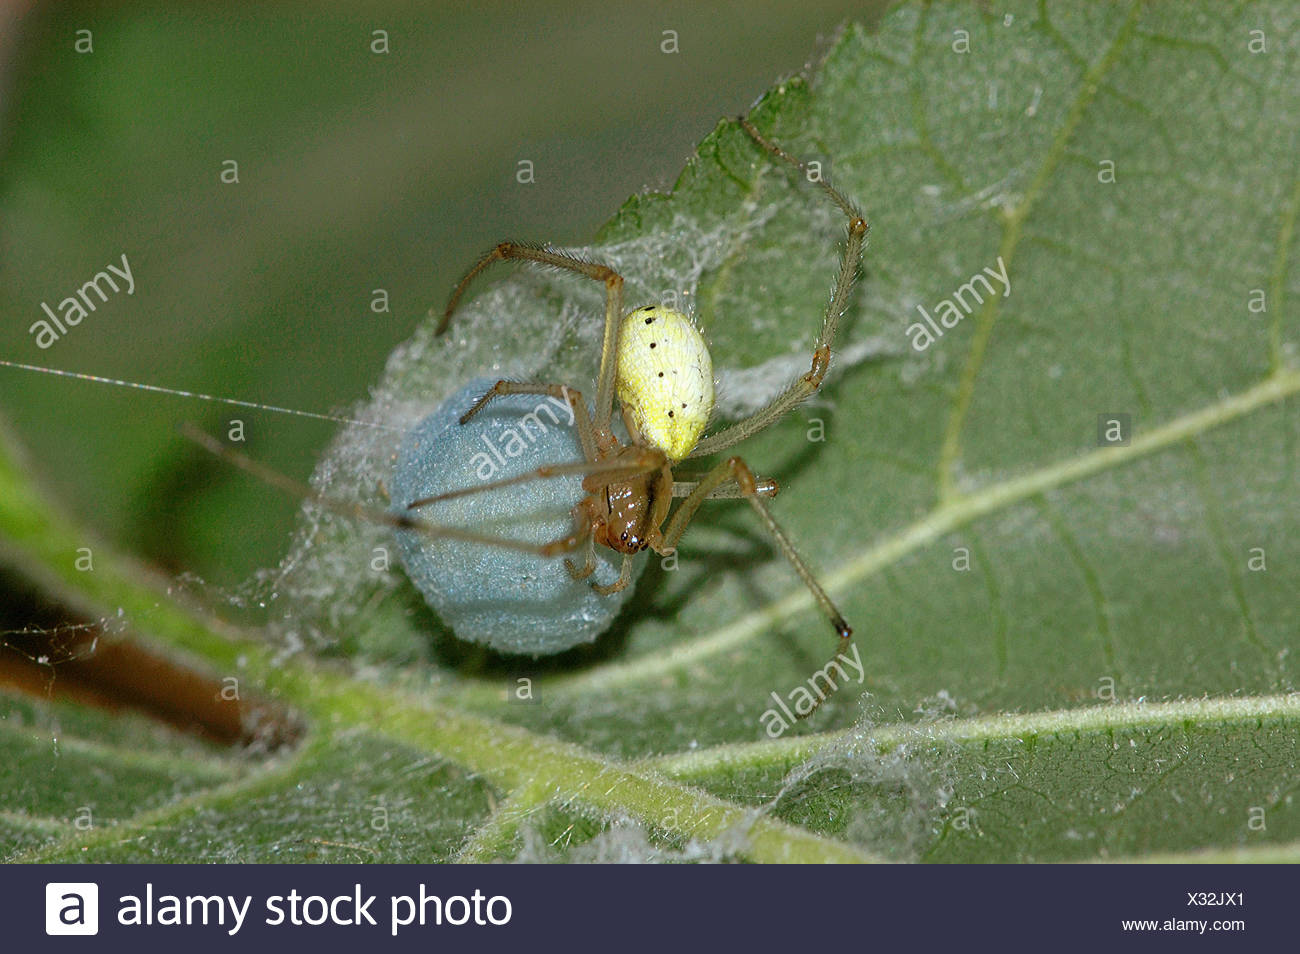 comb-footed spider with egg cocoon / Enoplognatha ovata - Stock Image